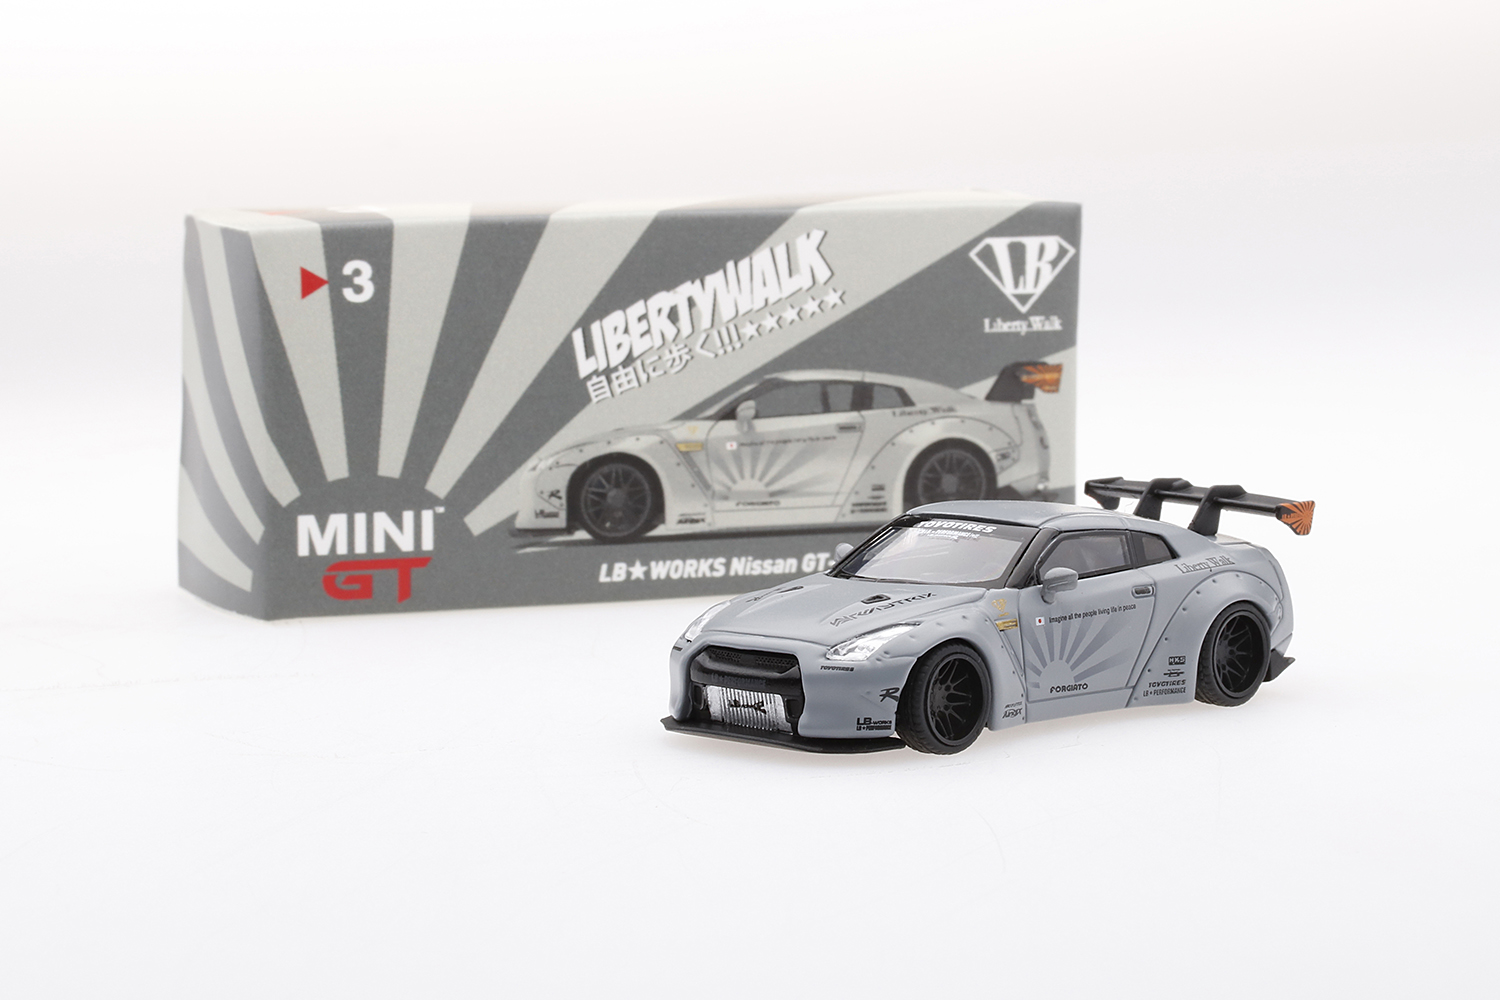 Mini GT 00003-L Liberty Walk Nissan GT-R R35 - Matt Grau 1:64